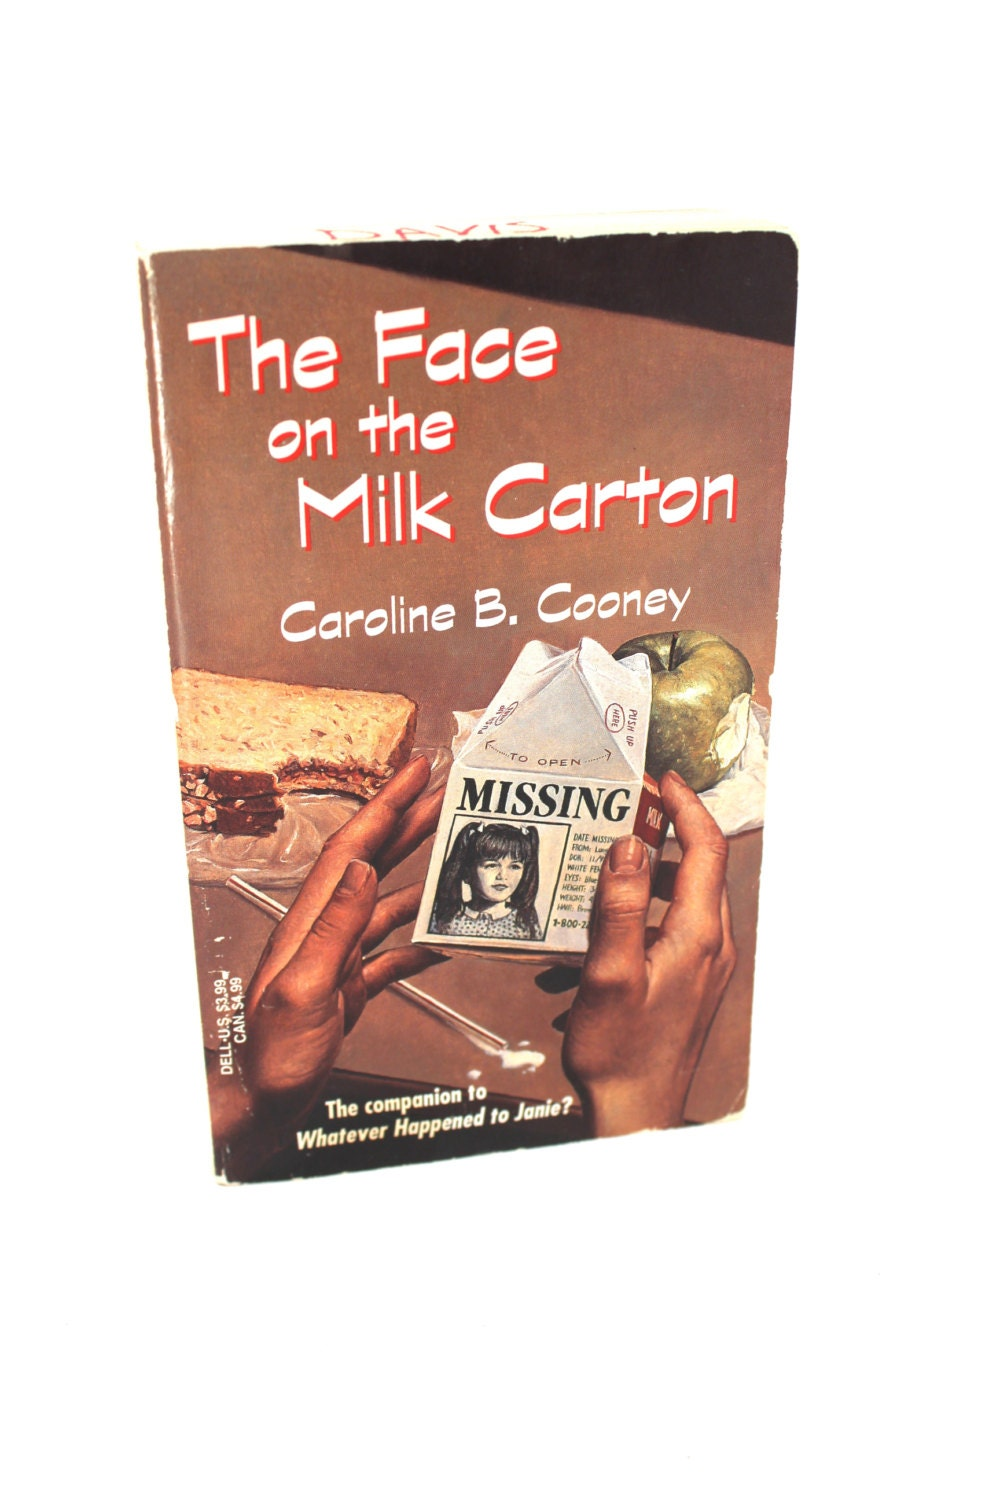 the face on the milk carton Buy, download and read the face on the milk carton ebook online in epub format for iphone, ipad, android, computer and mobile readers author: caroline b cooney isbn: 9780307567505 publisher: random house children's books no one ever really paid close attention to the faces of the missing children on the milk cartons.